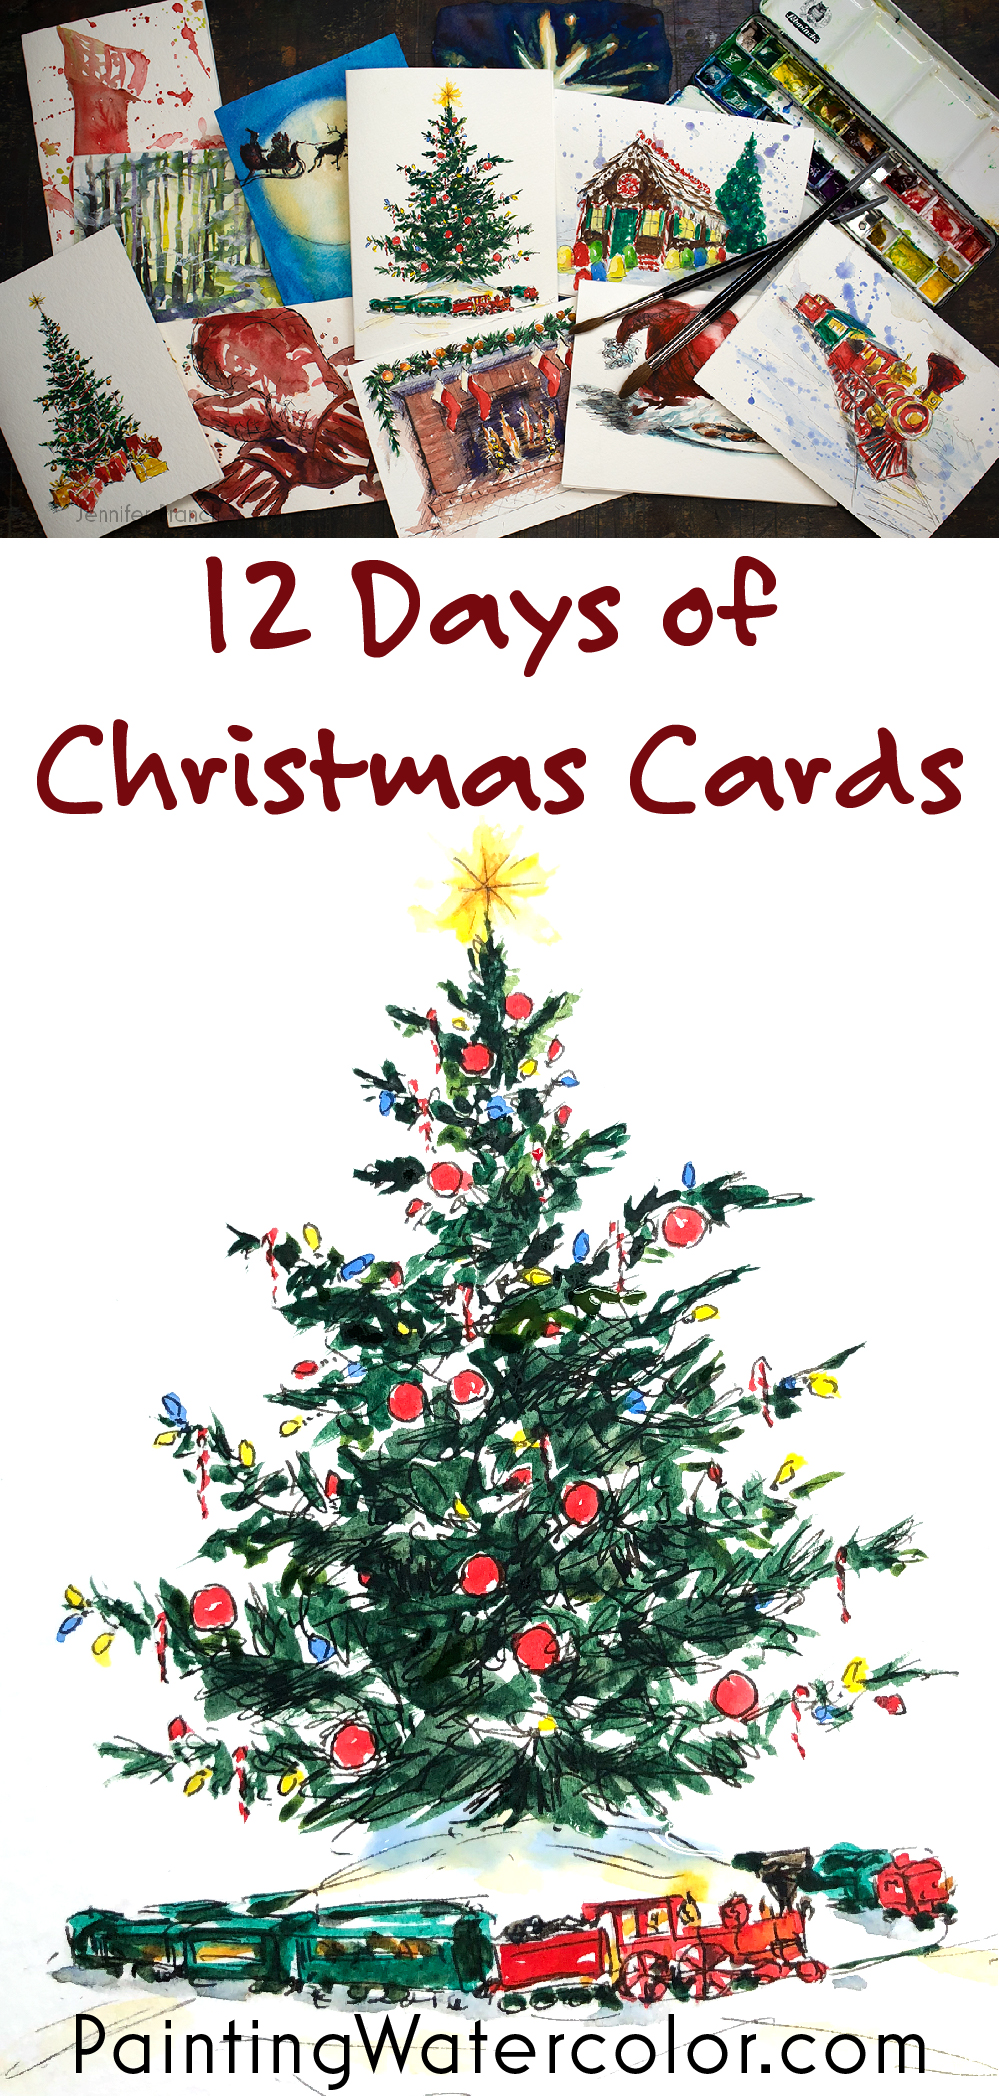 Paint beautiful Christmas cards for your family and friends! In the introduction, I show you all the materials you need to watercolor paint this beautiful Christmas tree card.